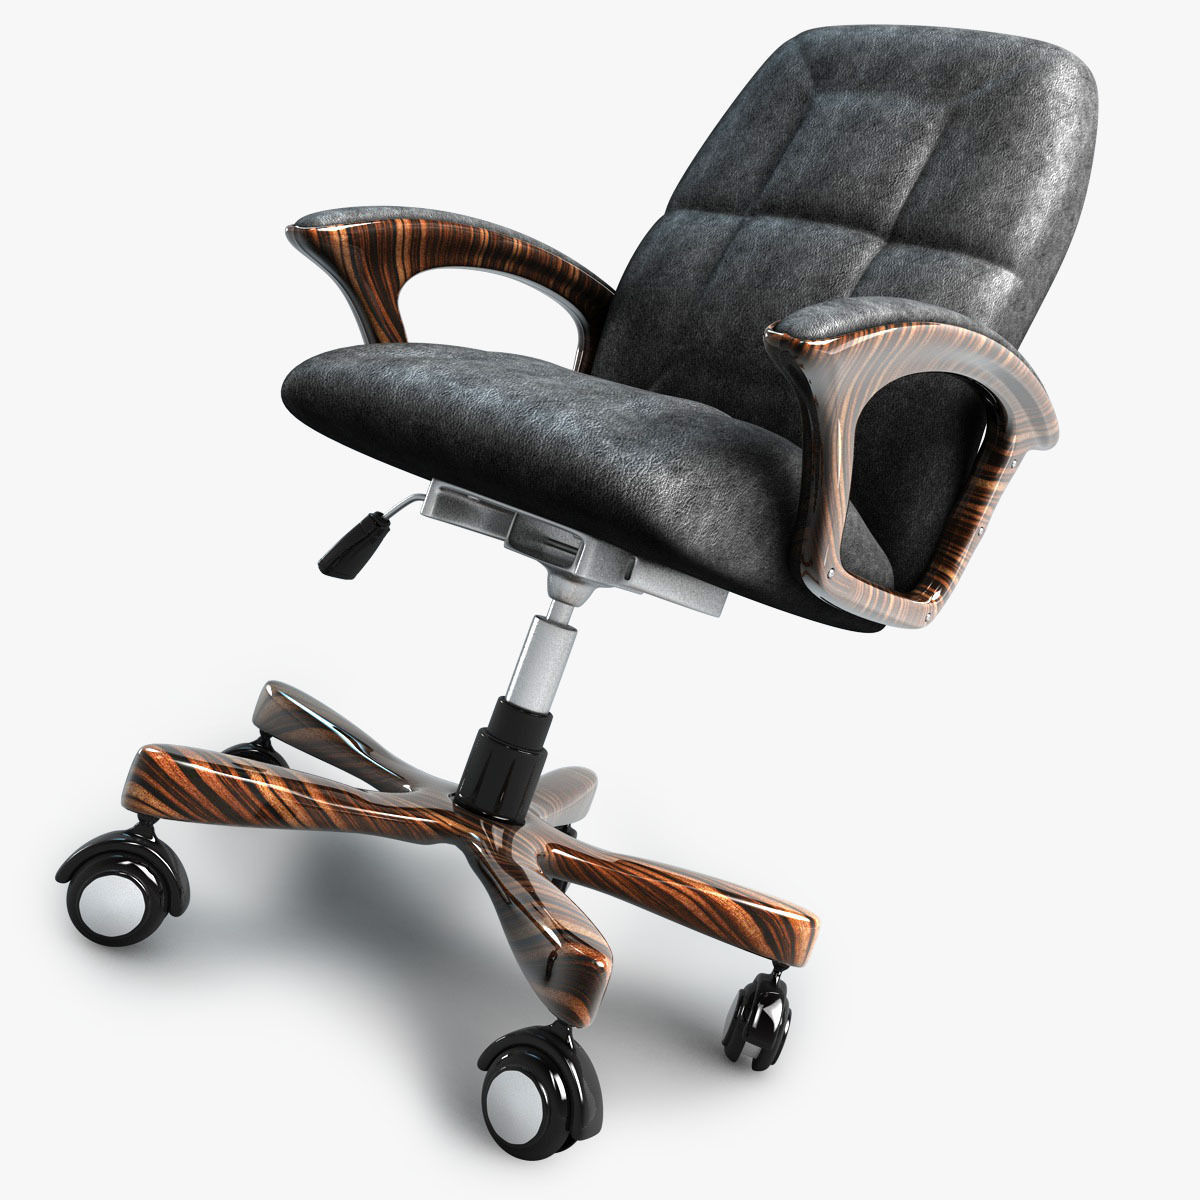 3d model office chair on wheels cgtrader